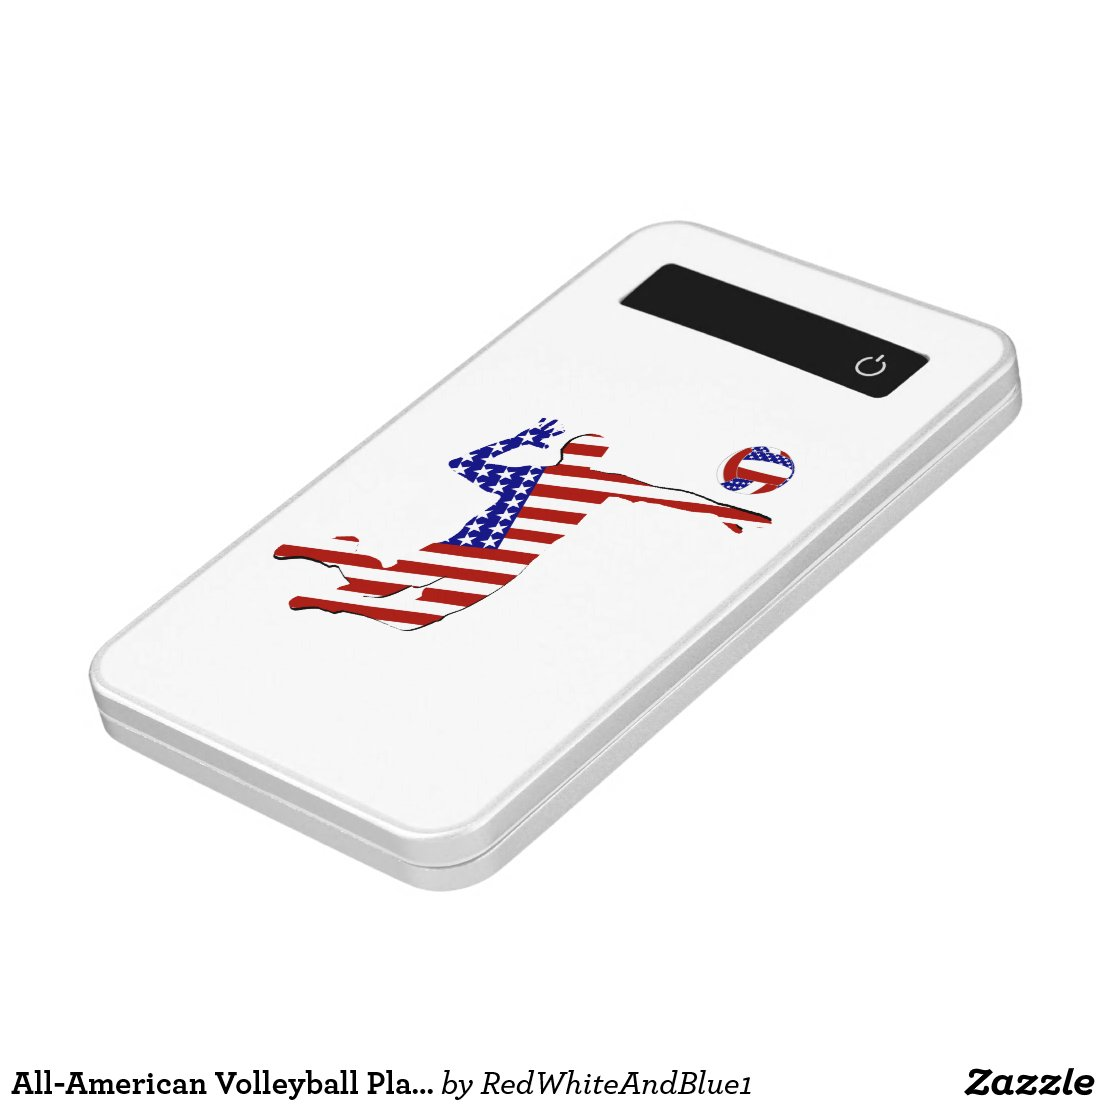 All-American Volleyball Player Power Bank